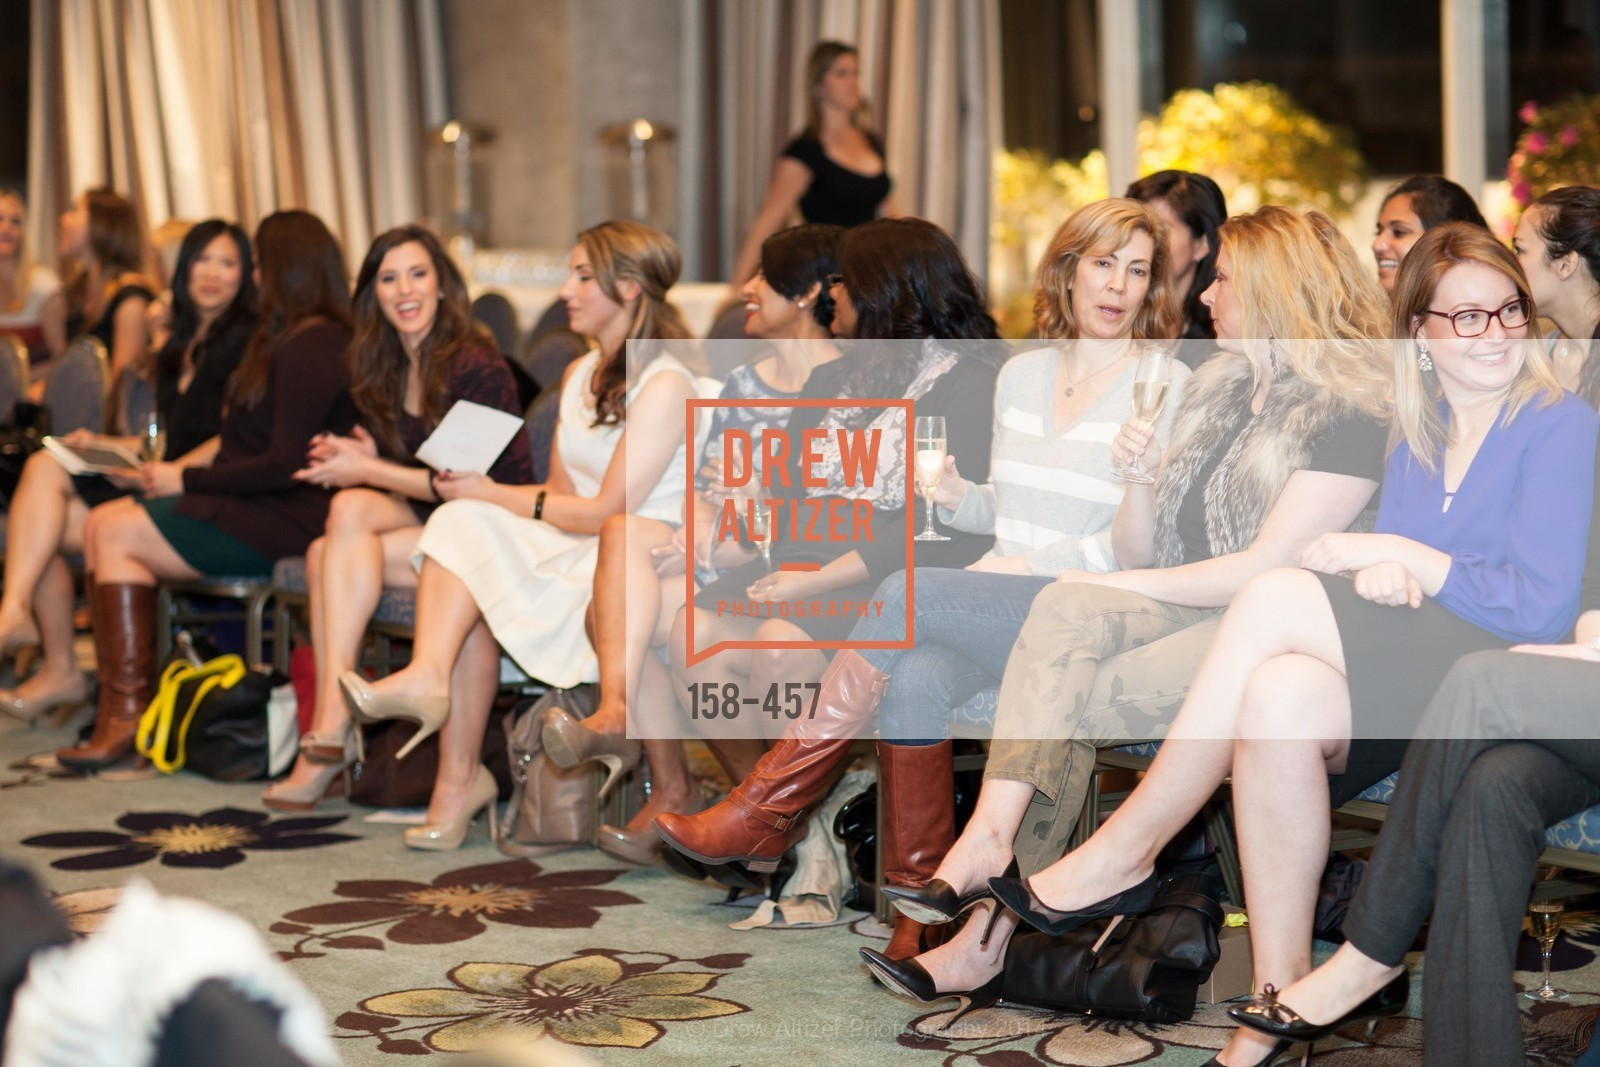 Atmosphere, The JUNIOR LEAGUE OF SAN FRANCISCO'S 88th Annual Fashion Show Model Tryouts, January 9th, 2014, Photo,Drew Altizer, Drew Altizer Photography, full-service agency, private events, San Francisco photographer, photographer california